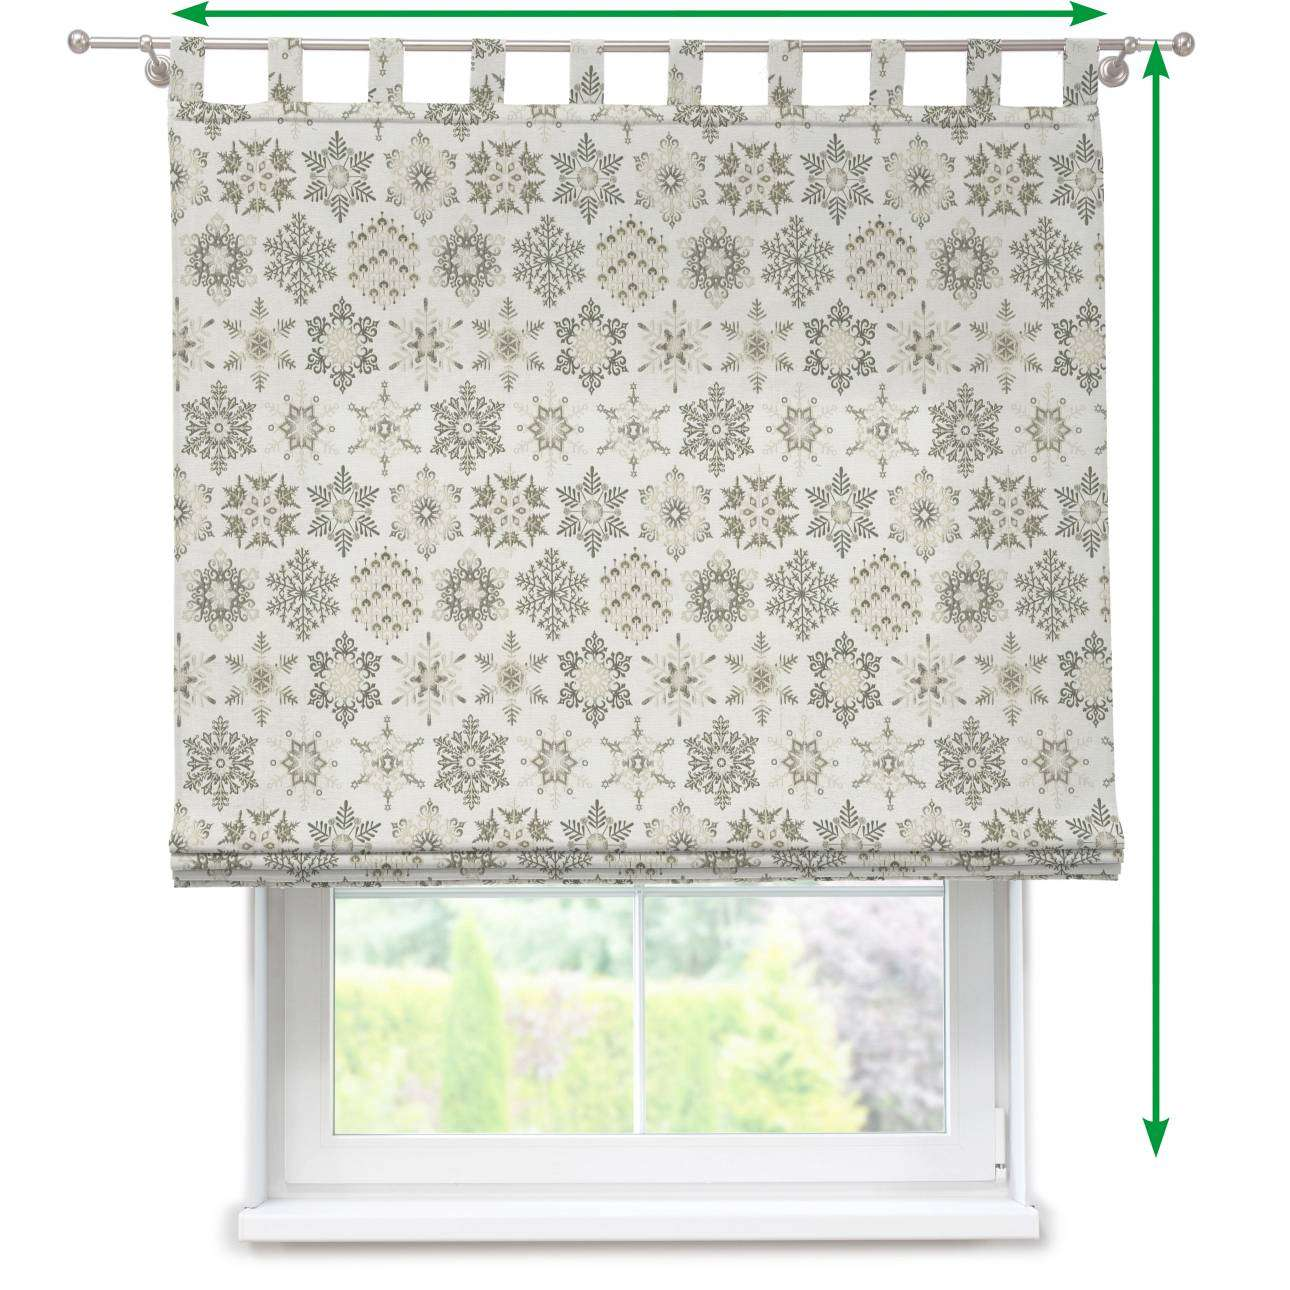 Verona tab top roman blind in collection Christmas , fabric: 630-27